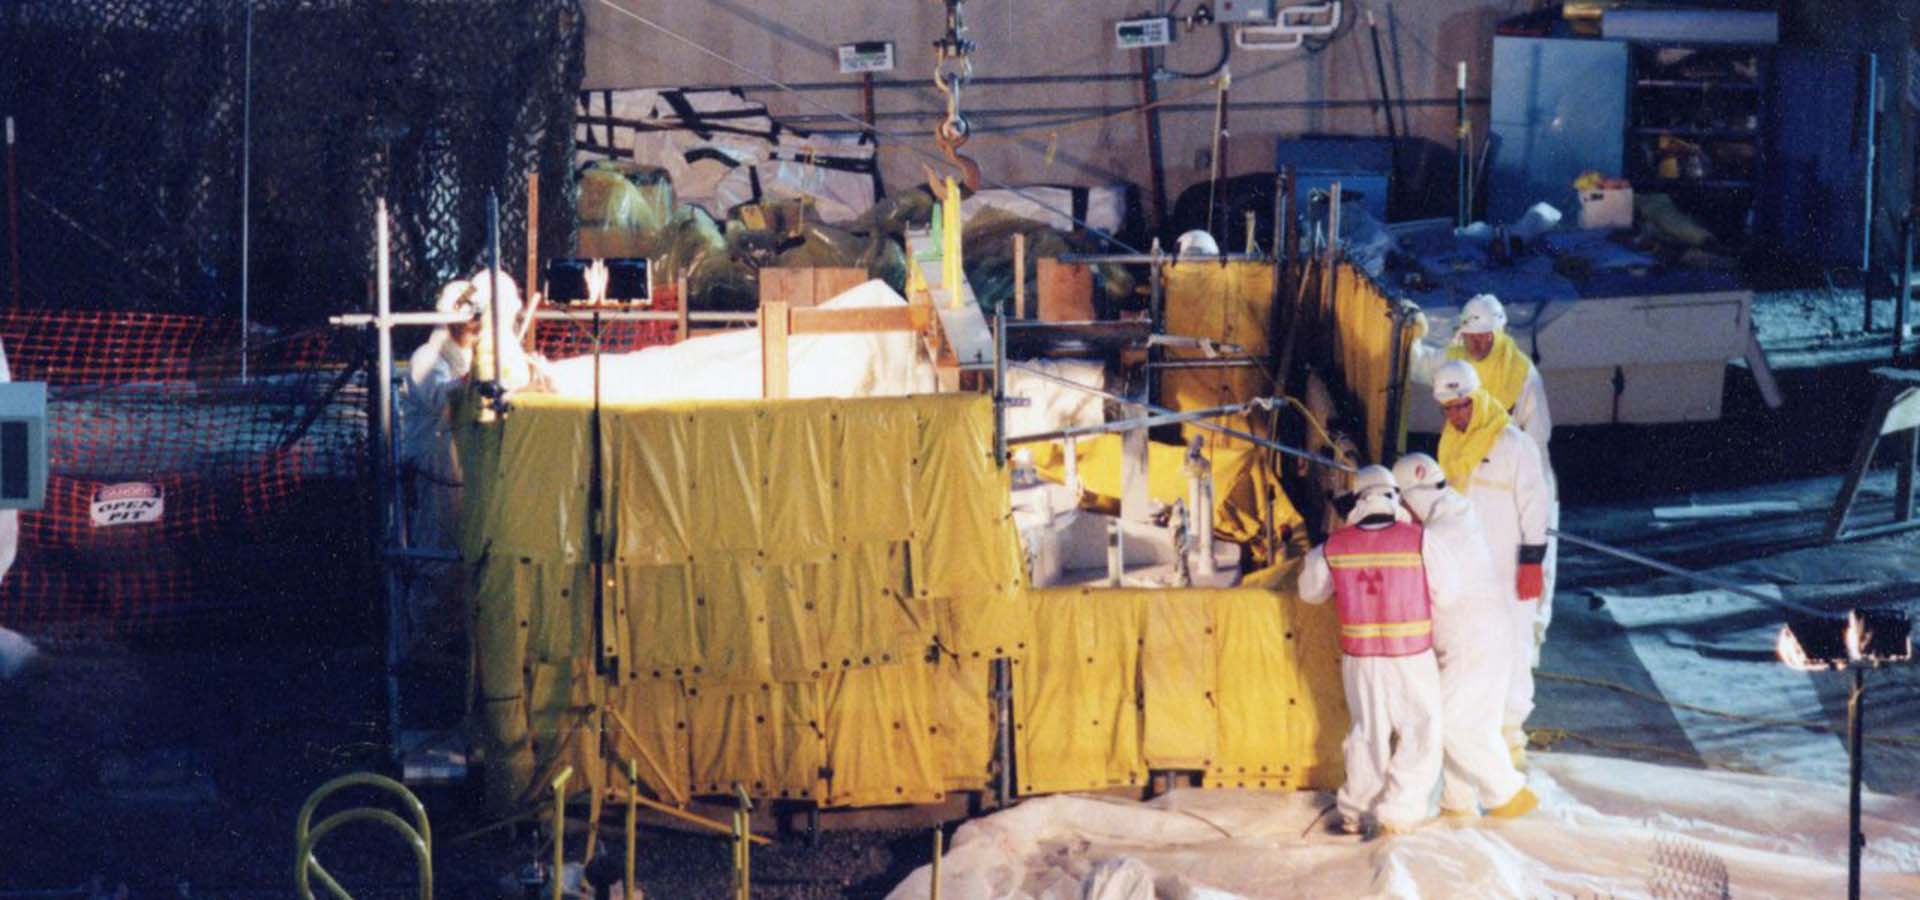 Workers in protective suits cleaning up a nuclear site.